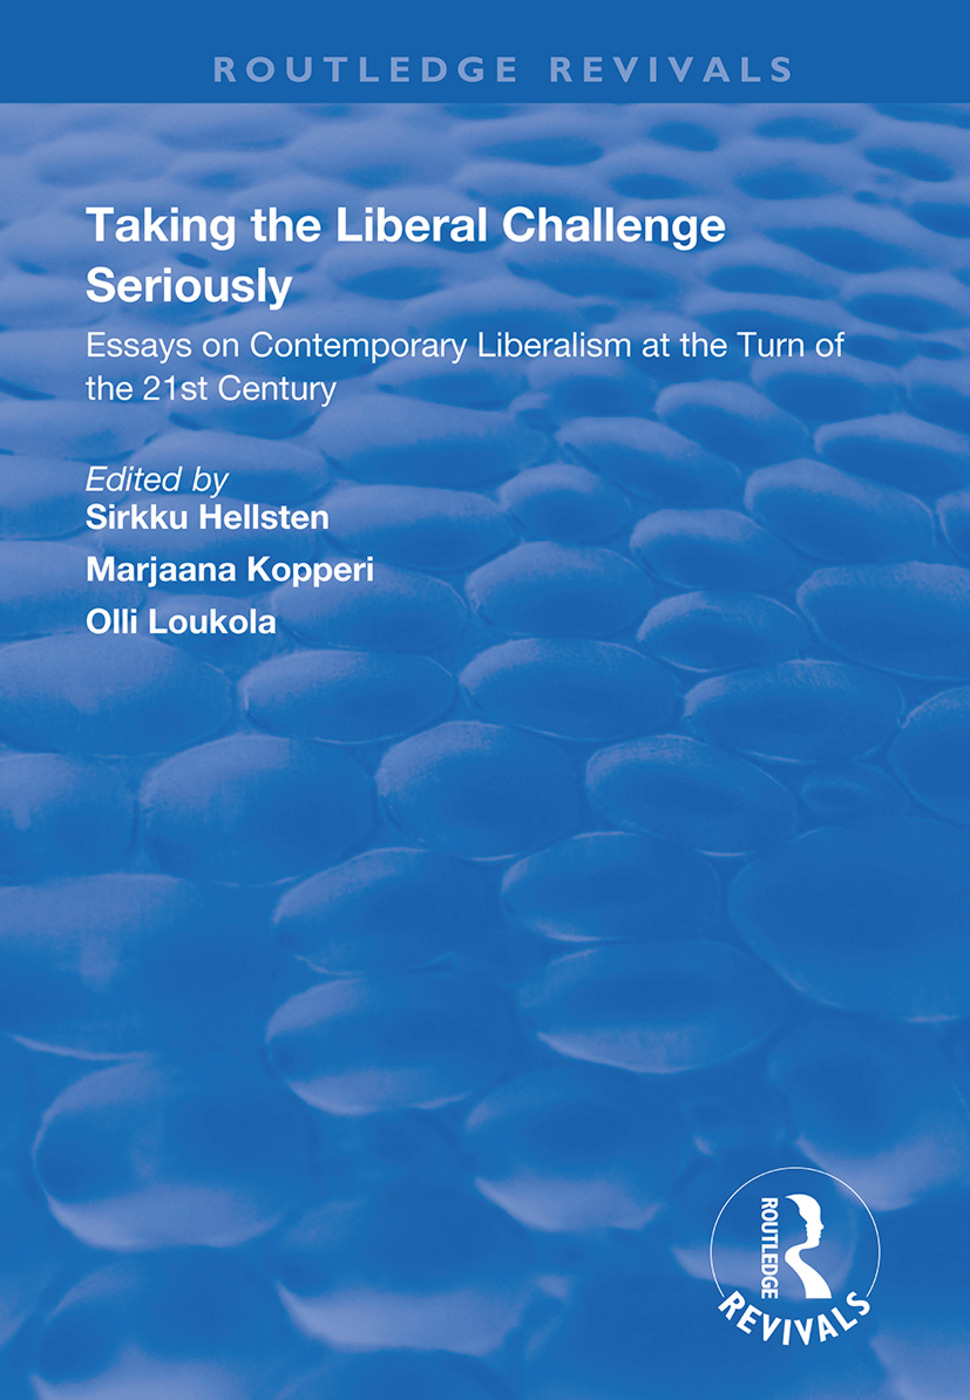 Taking the Liberal Challenge Seriously: Essays on Contemporary Liberalism at the Turn of the 21st Century book cover